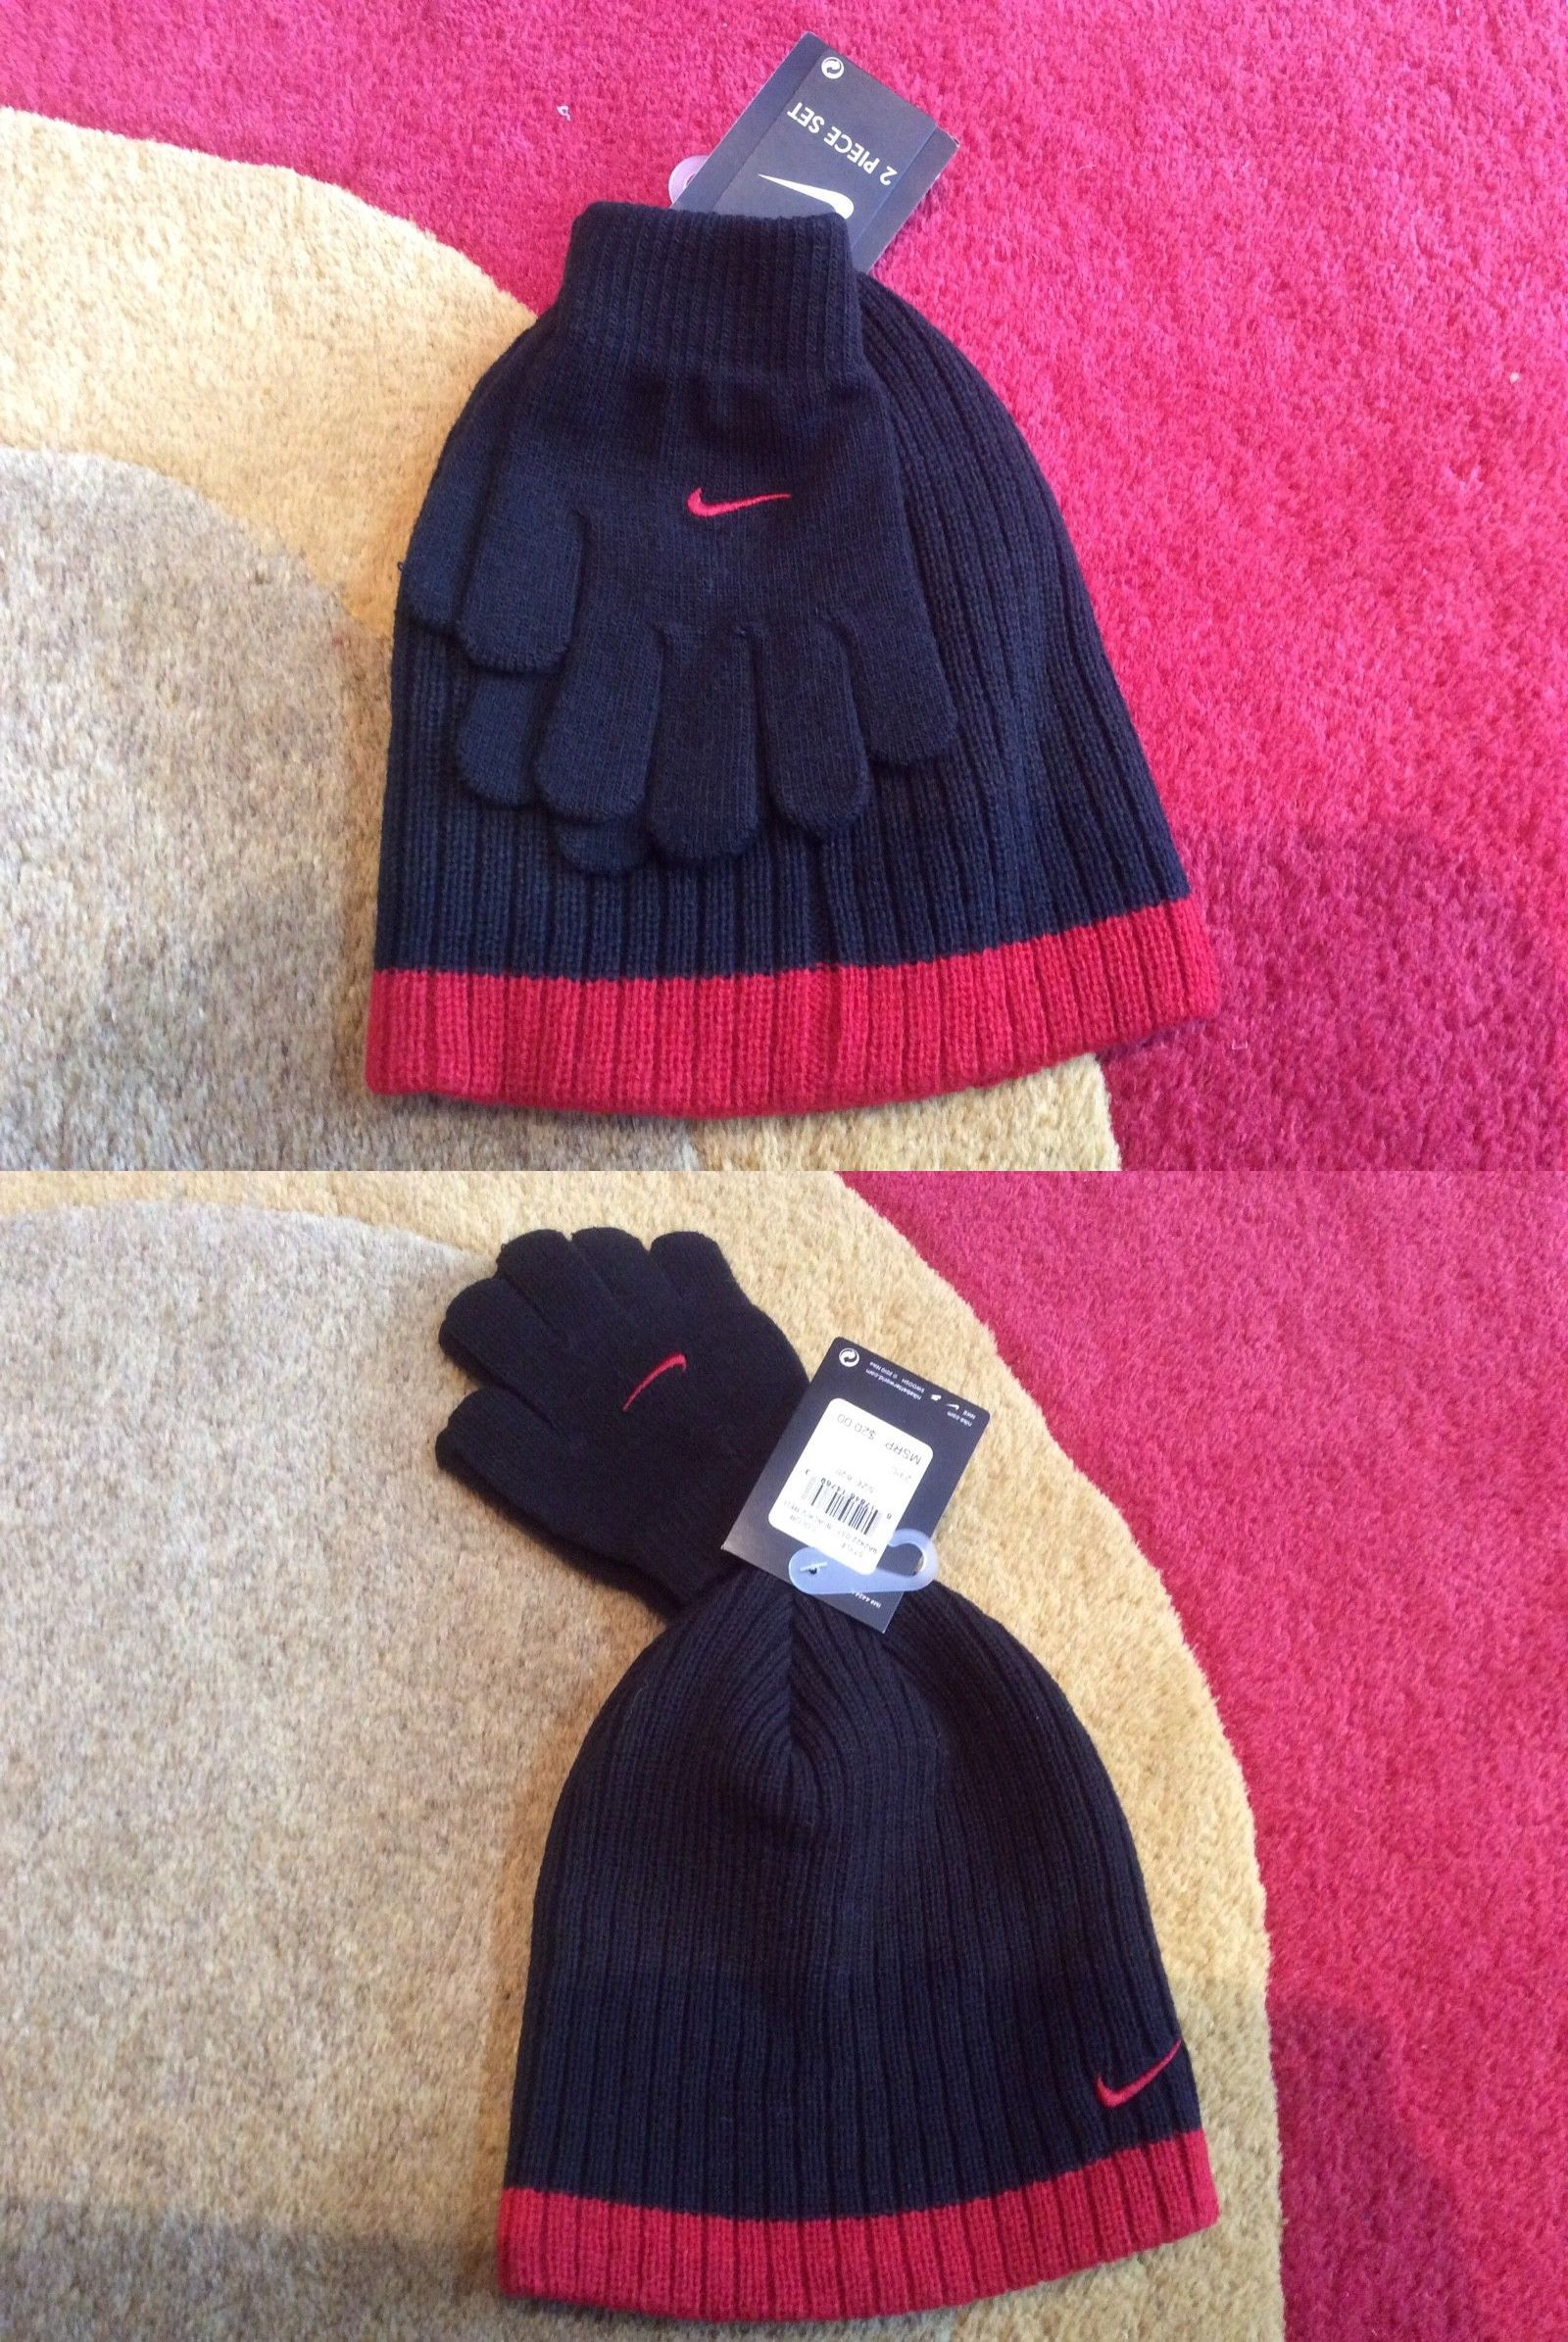 59b3af9e838 Hats 57884  Nwt Boy S Youth Nike Beanie And Knit Gloves Set —Black Red -   BUY IT NOW ONLY   14.99 on  eBay  youth  beanie  gloves